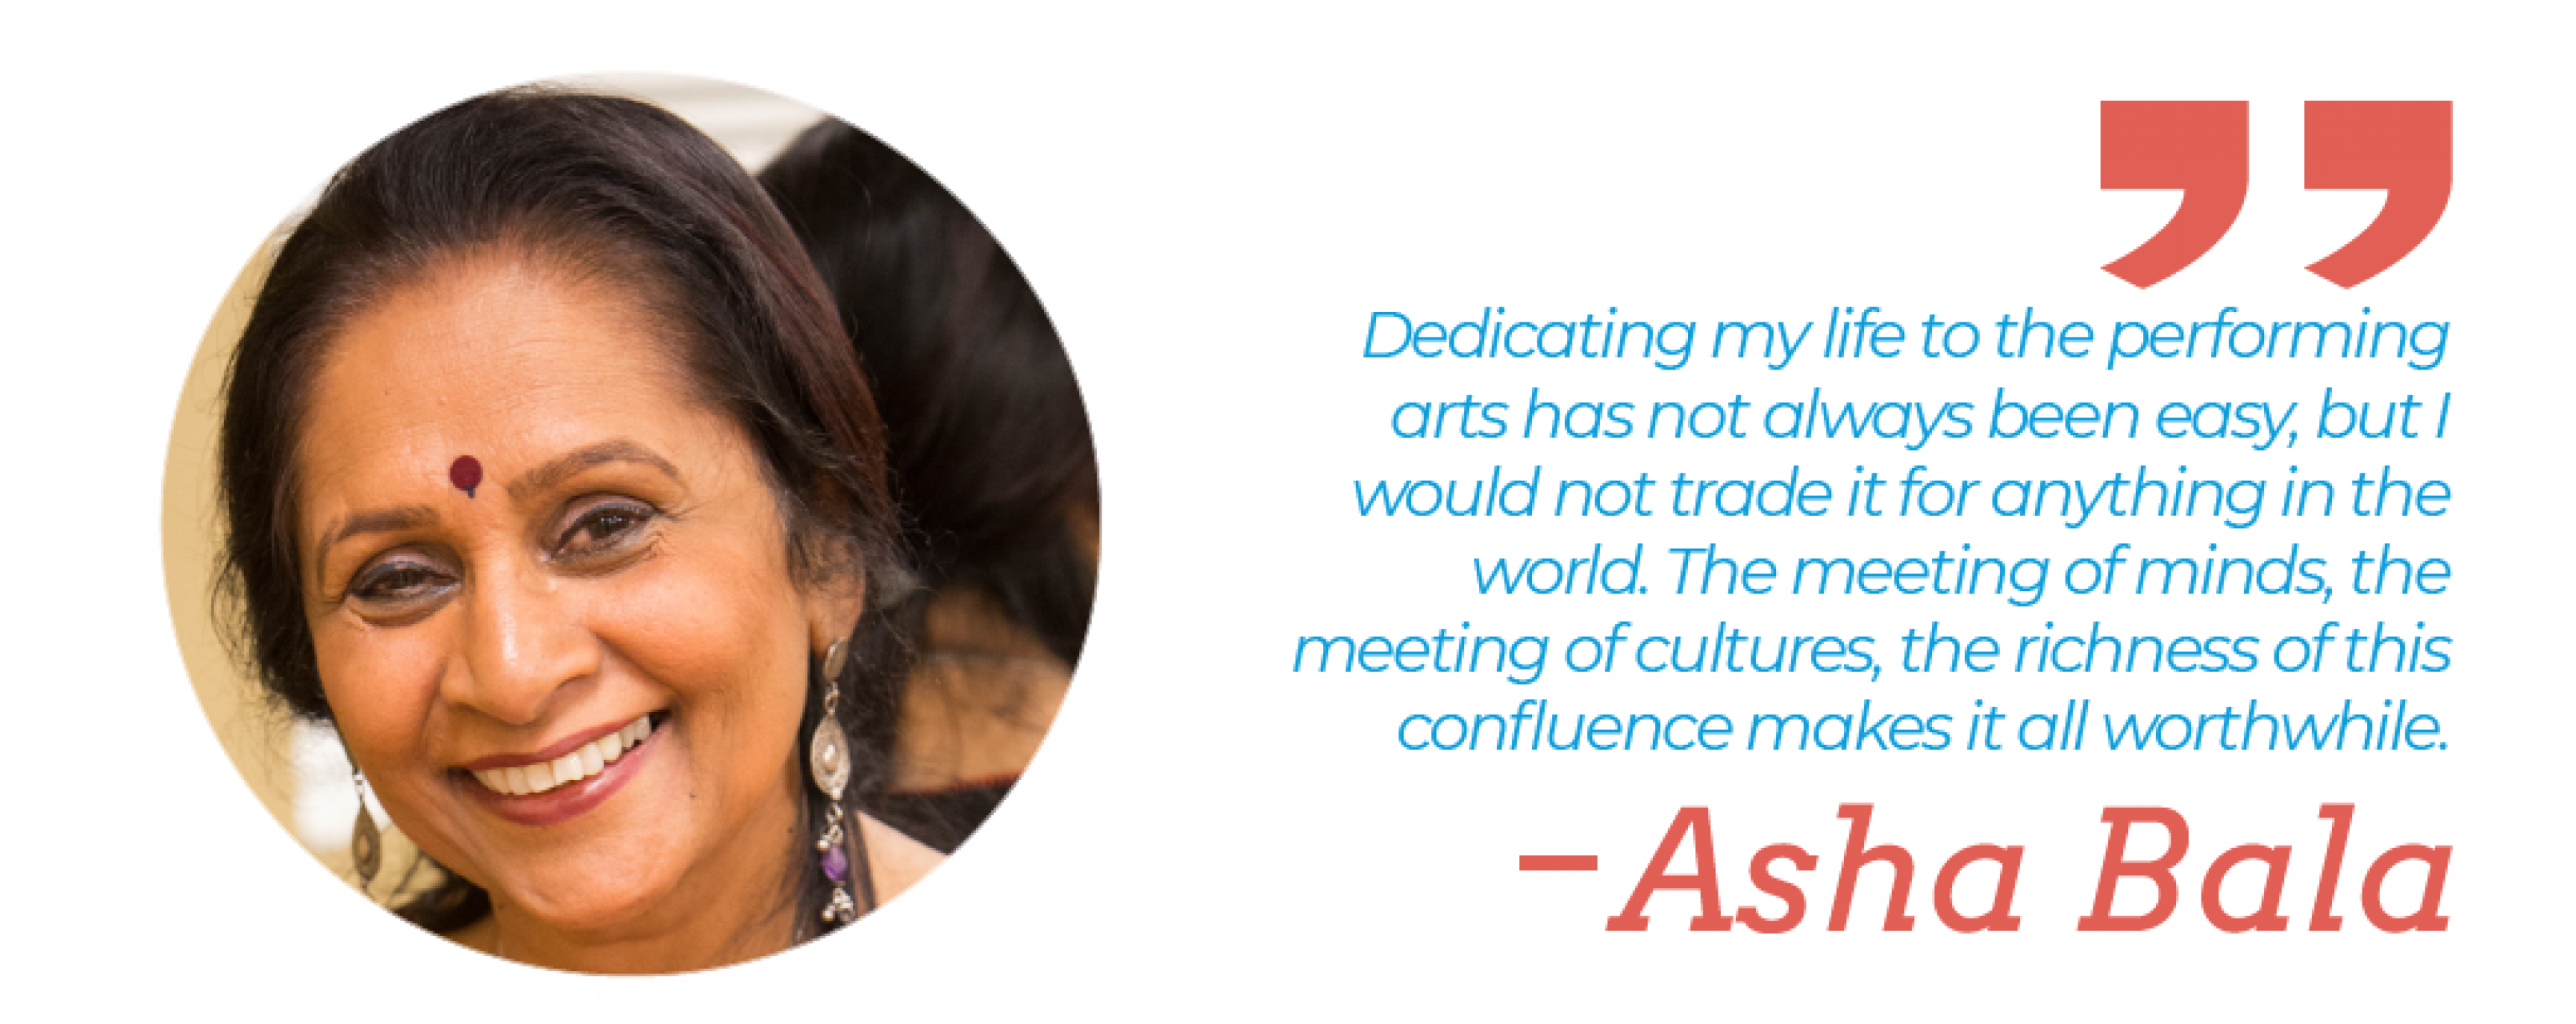 """Dedicating my life to the performing arts has not always been easy, but I would not trade it for anything in the world. The meeting of minds, the meeting of cultures, the richness of this confluence makes it all worthwhile."" — Asha Bala"""